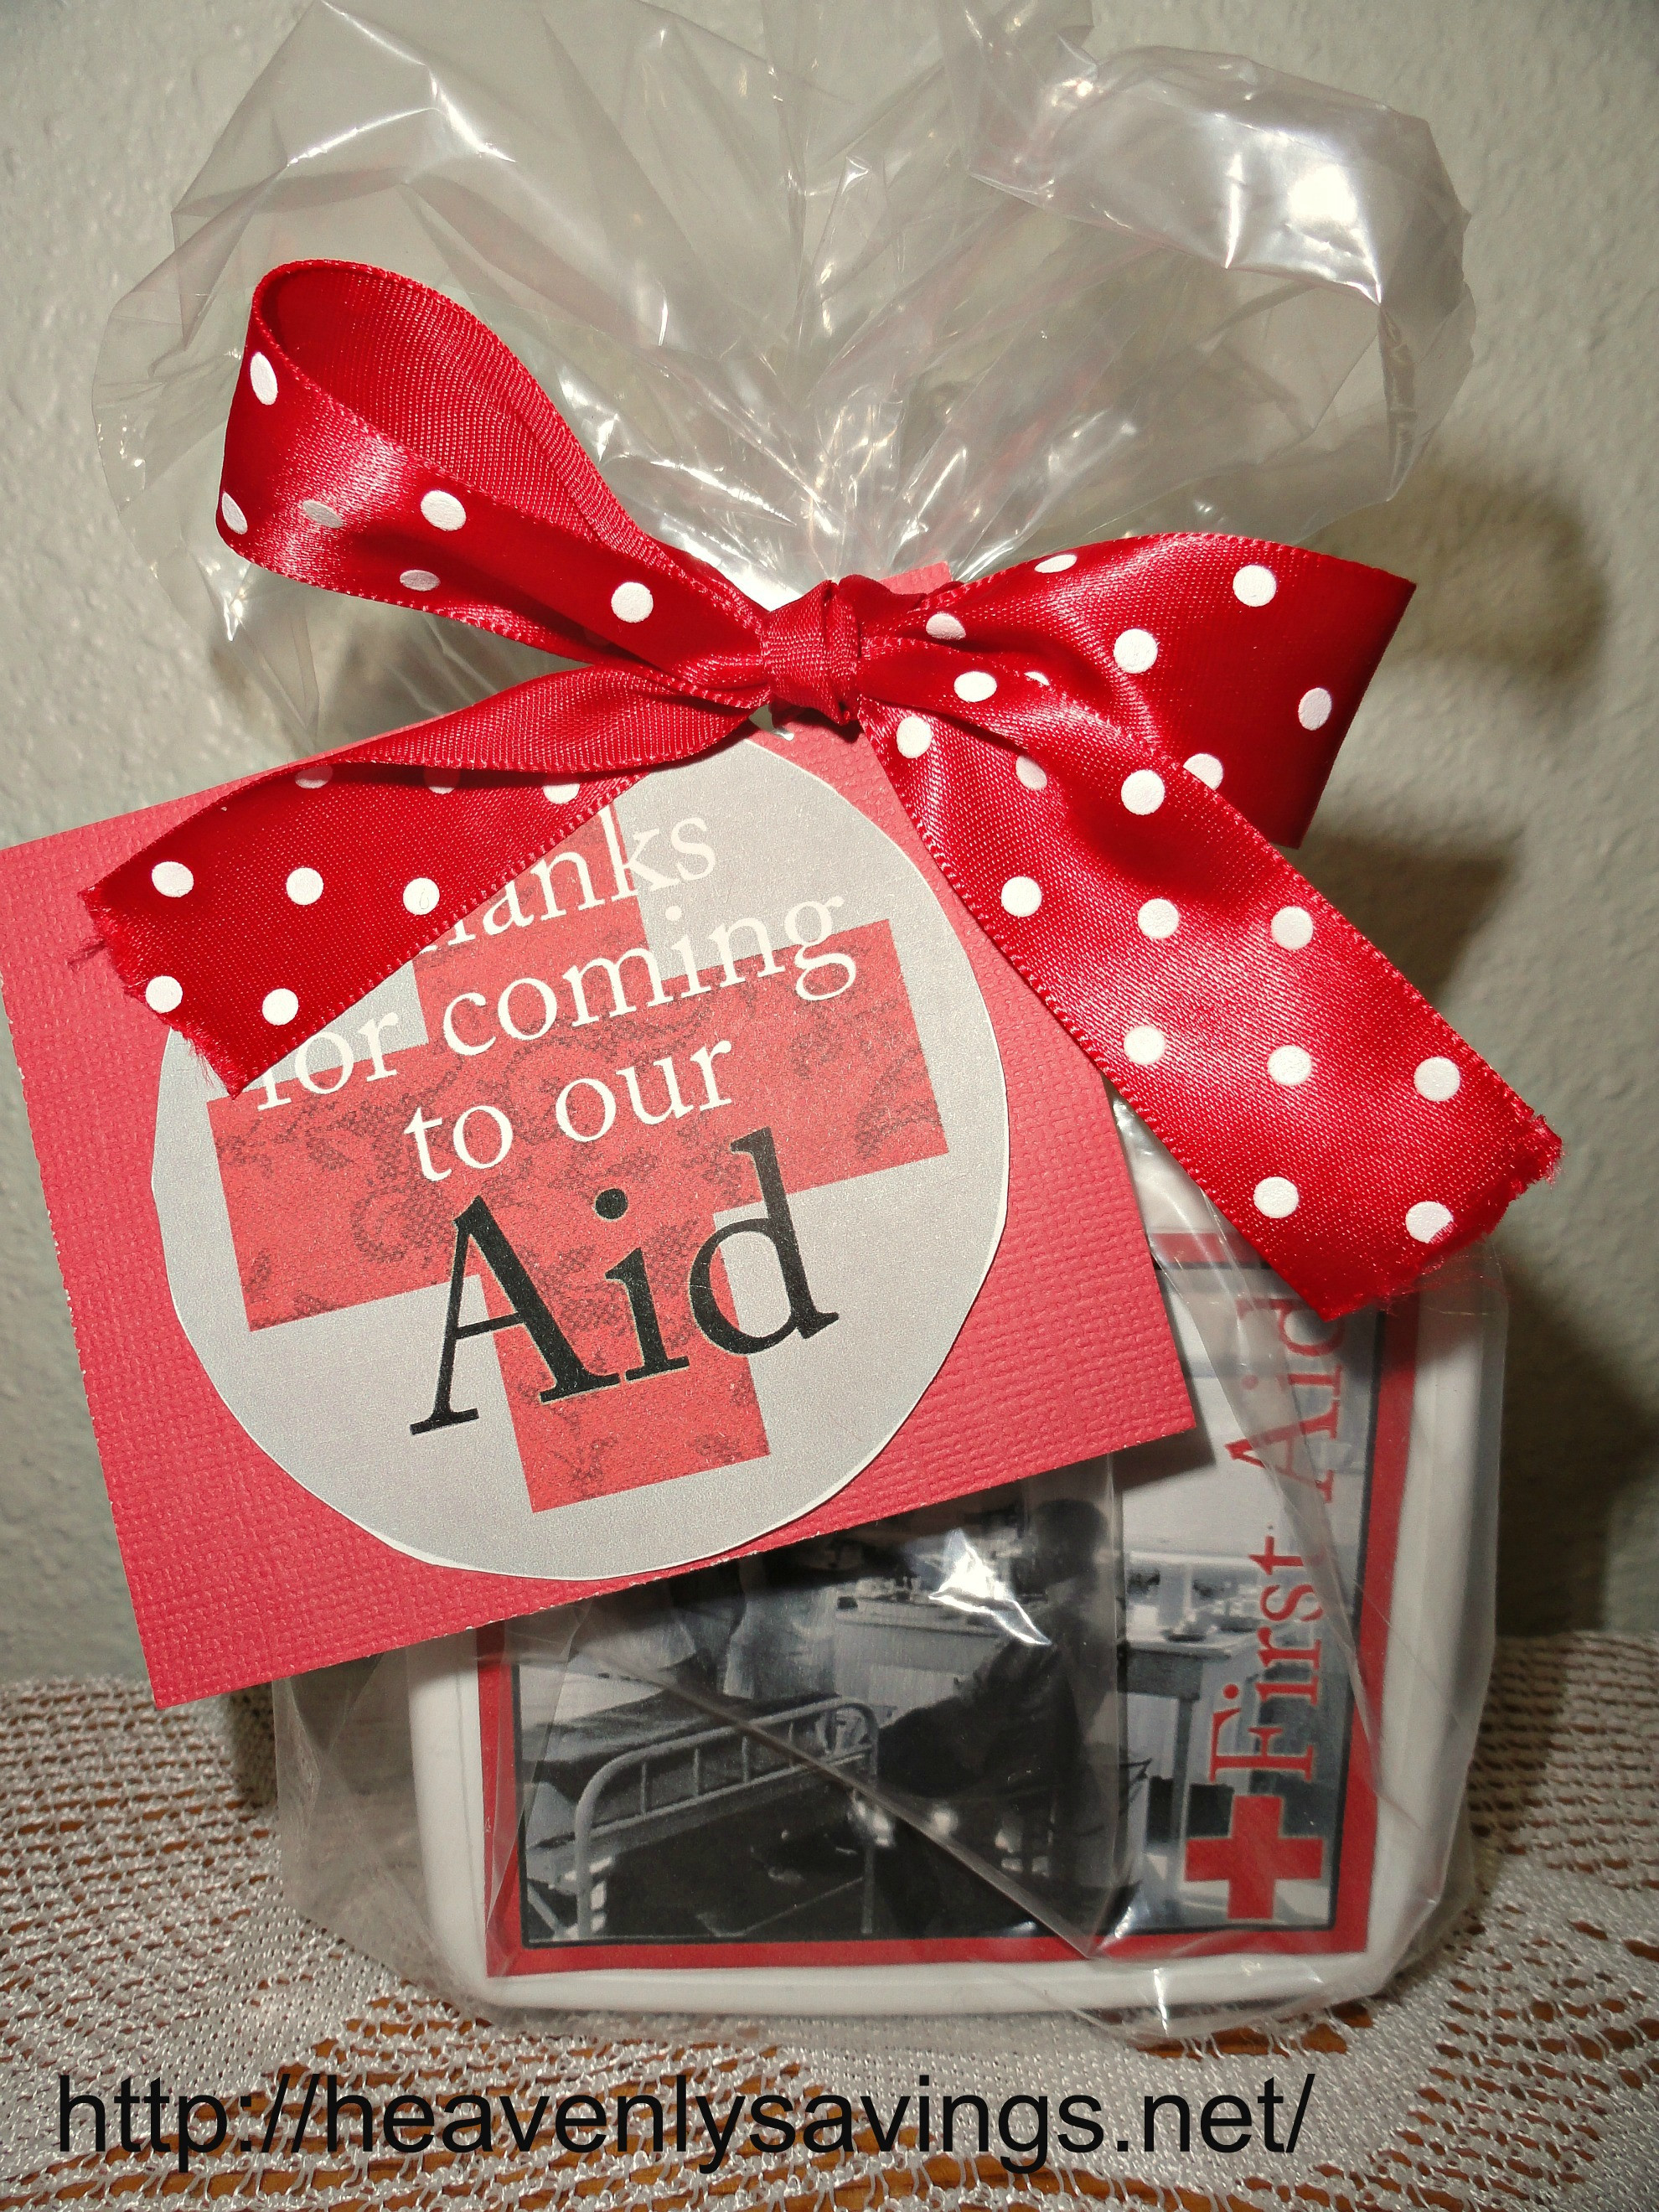 Best ideas about Homemade Thank You Gift Ideas . Save or Pin Cheap and Easy Thank You Gift Now.